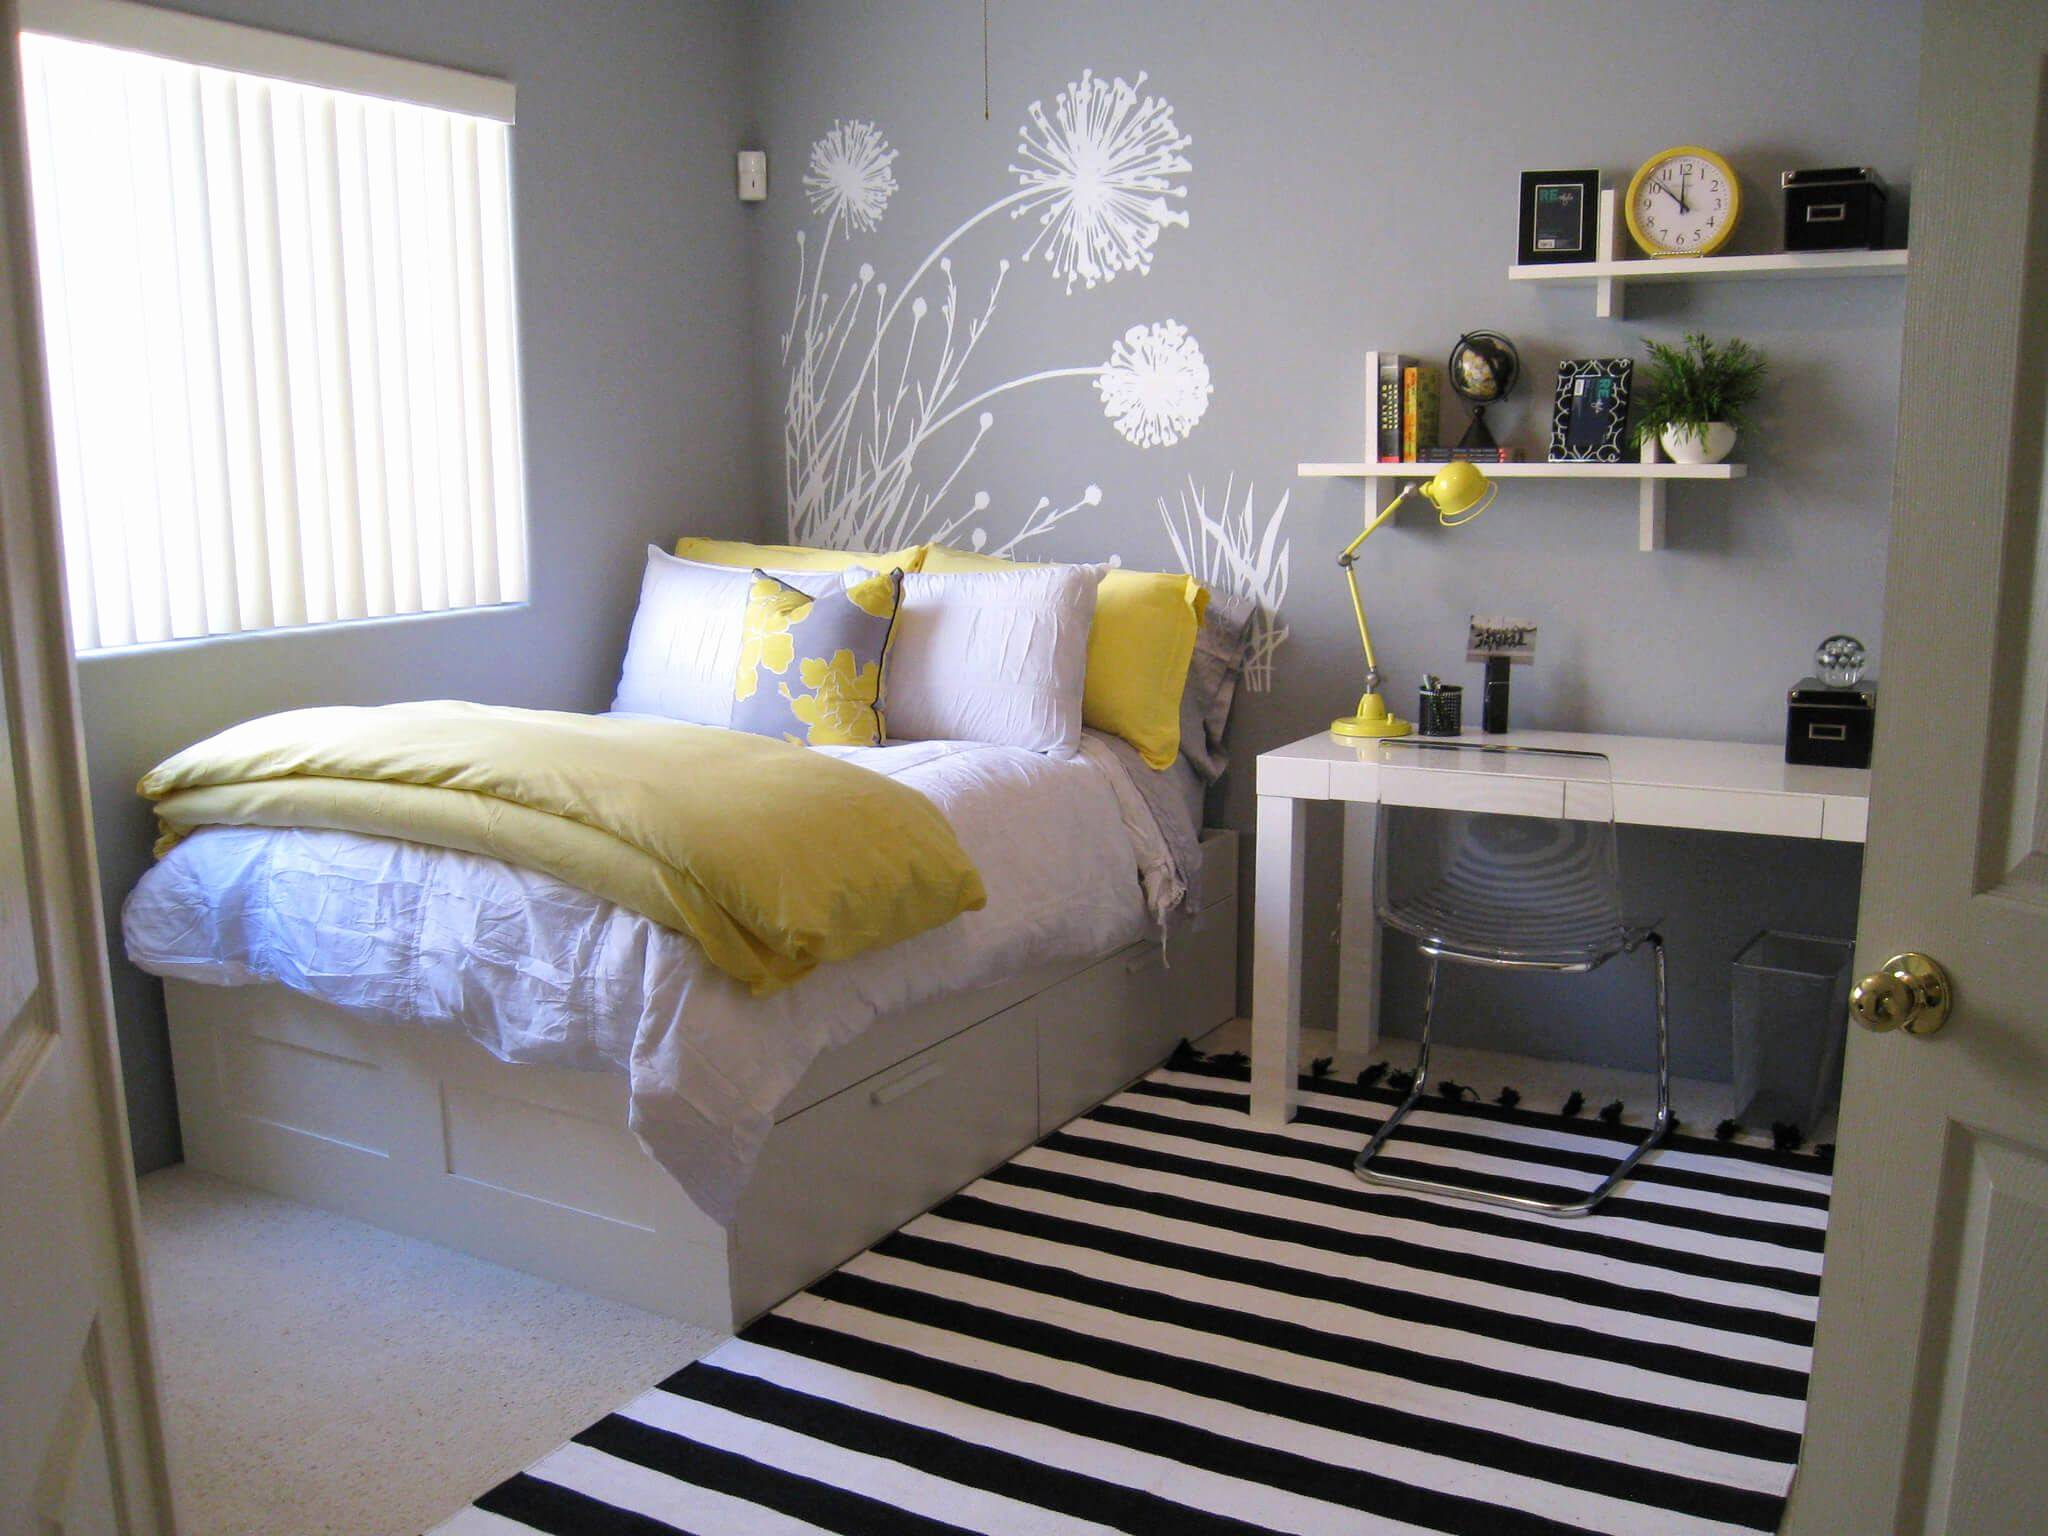 decorating ideas for small bedrooms with queen bed 0d archives home interior design ideas bedrooms elegant bedroom decorating ideas tumblr interior small bedroom decor